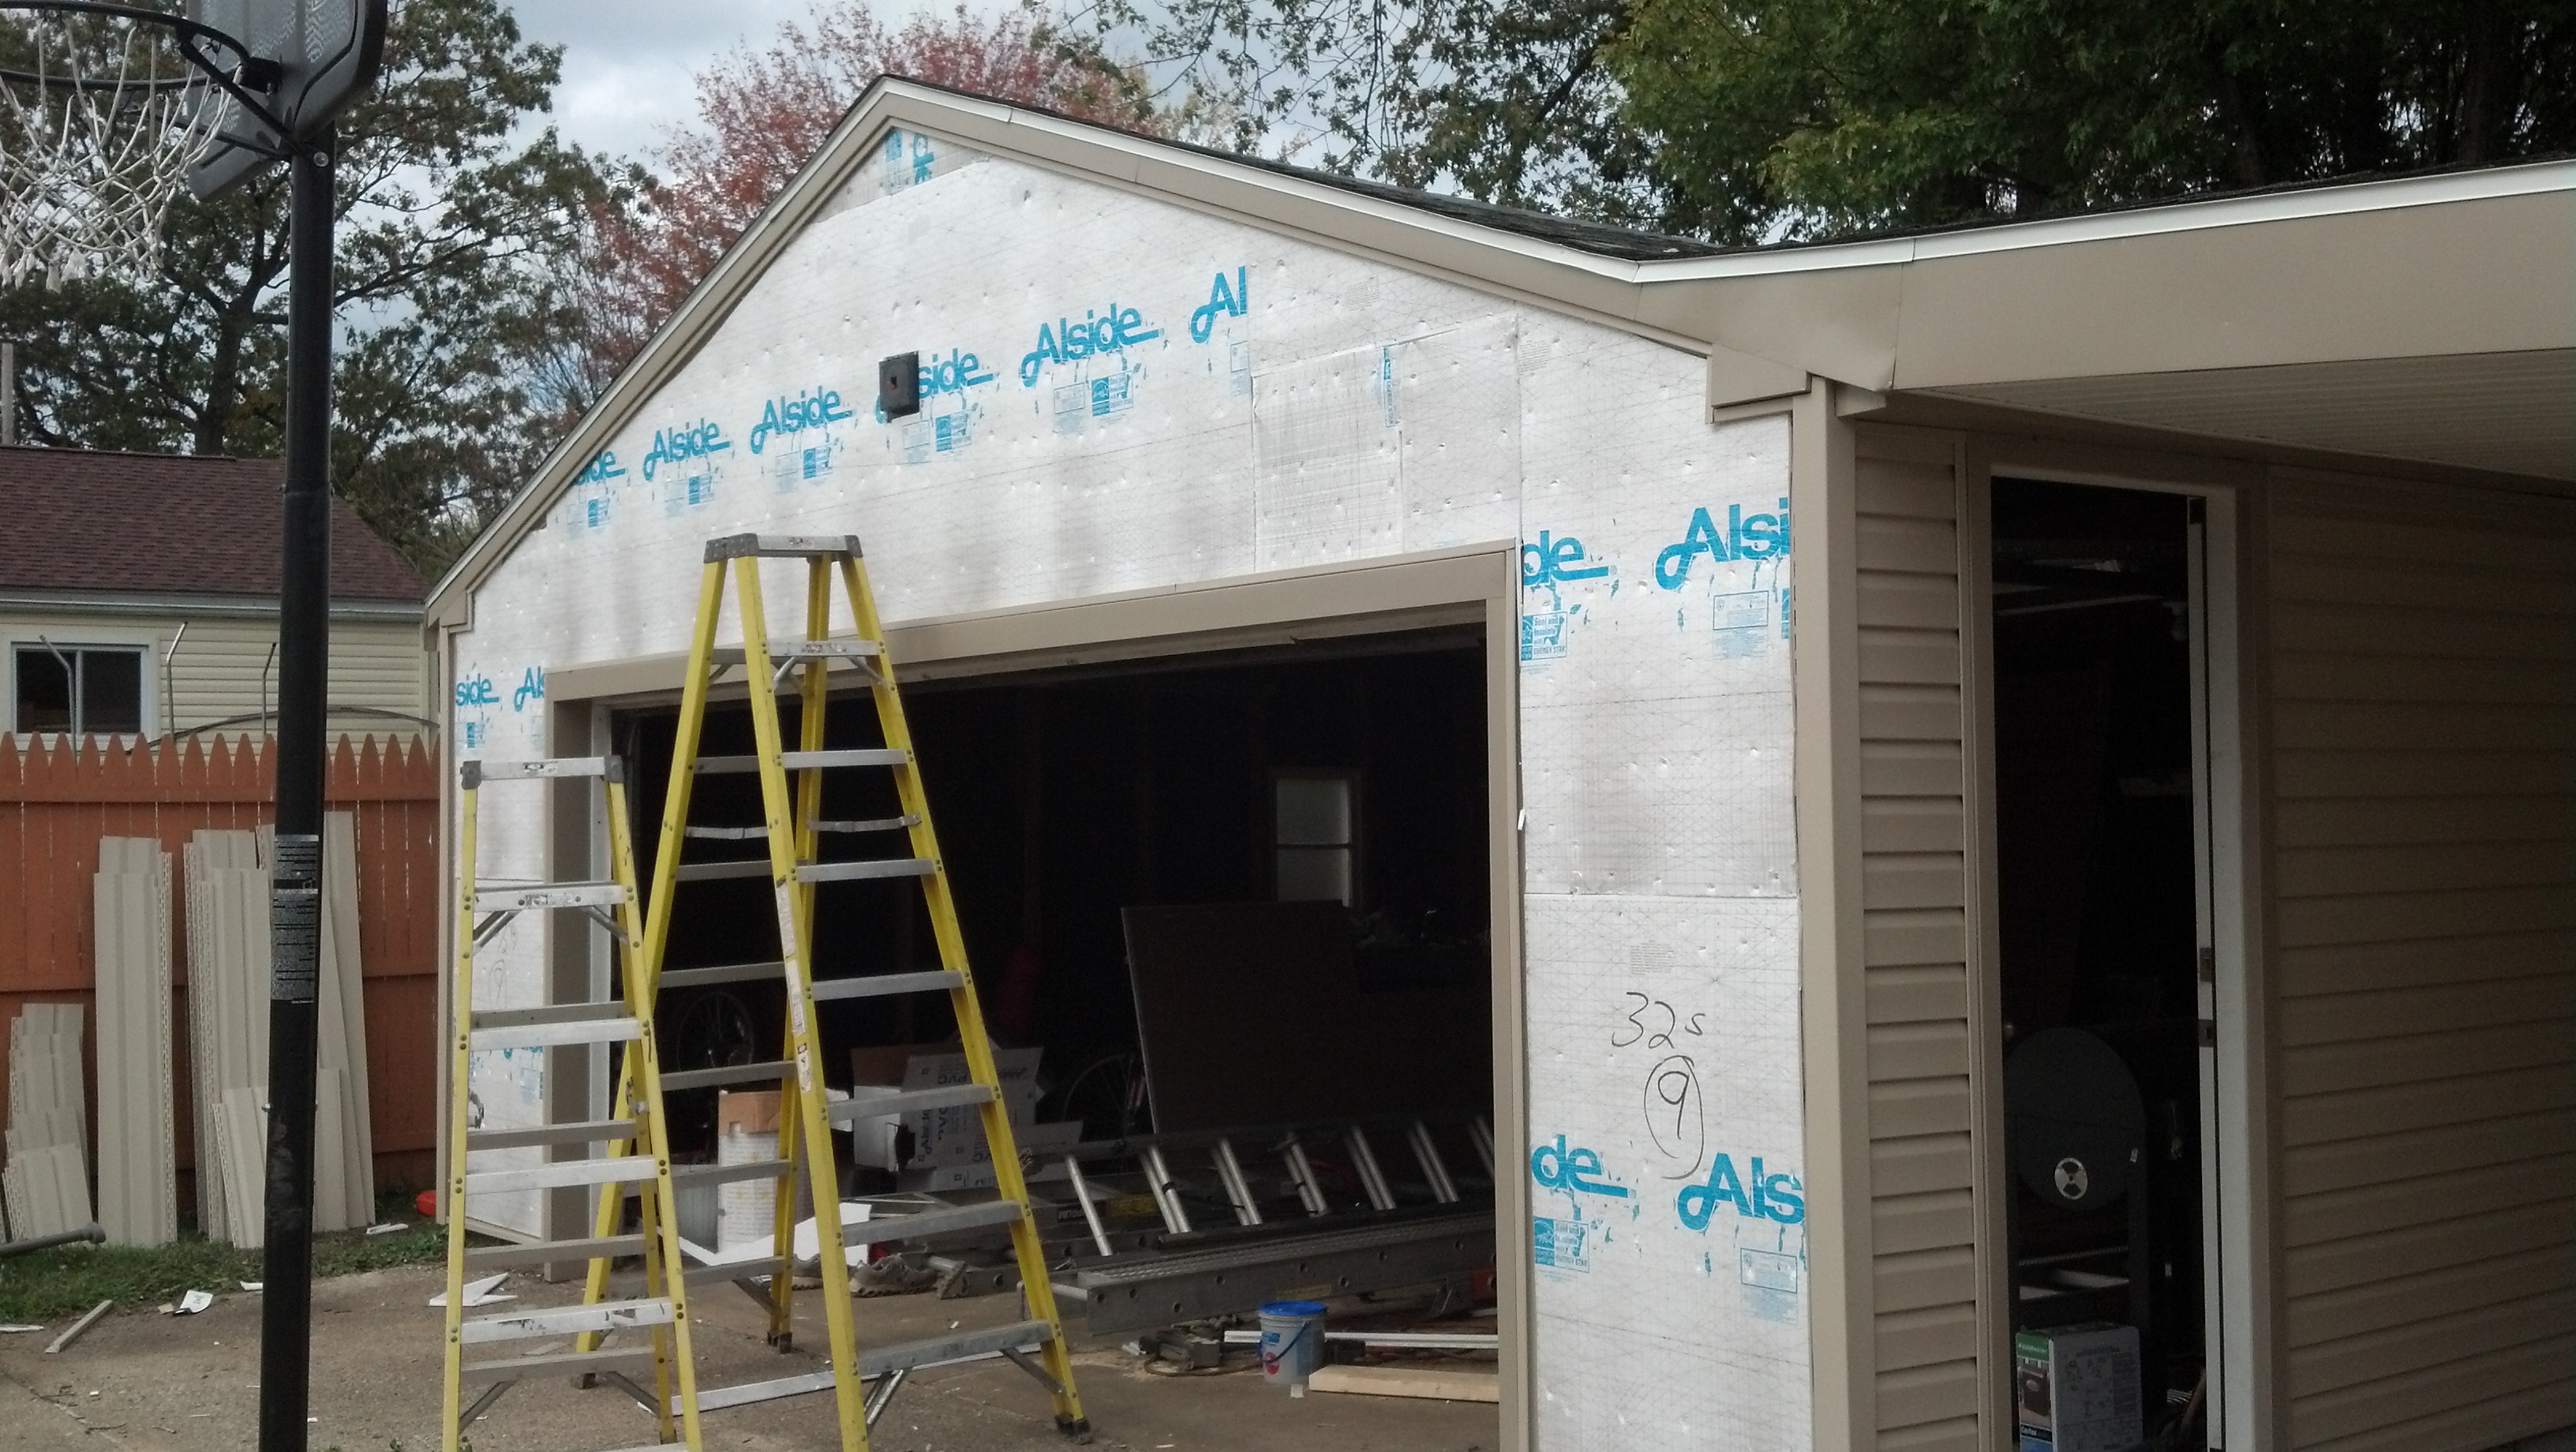 garage siding under repair